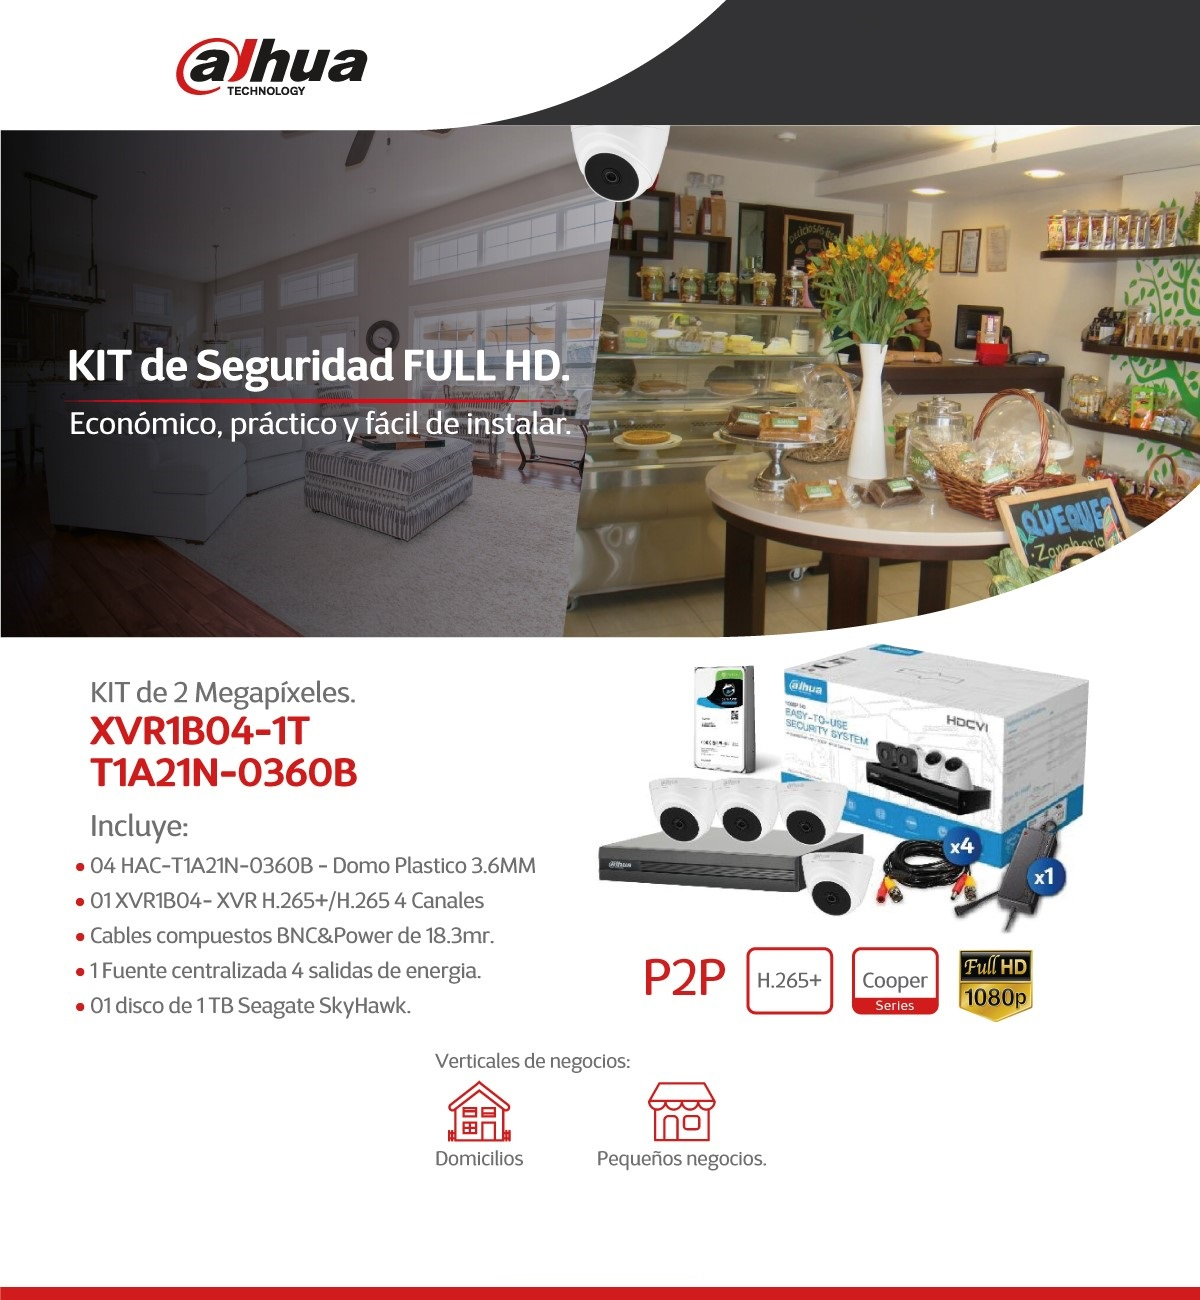 https://0201.nccdn.net/1_2/000/000/15f/7d6/KIT-CCTV-DE-SEGURIDAD.jpg